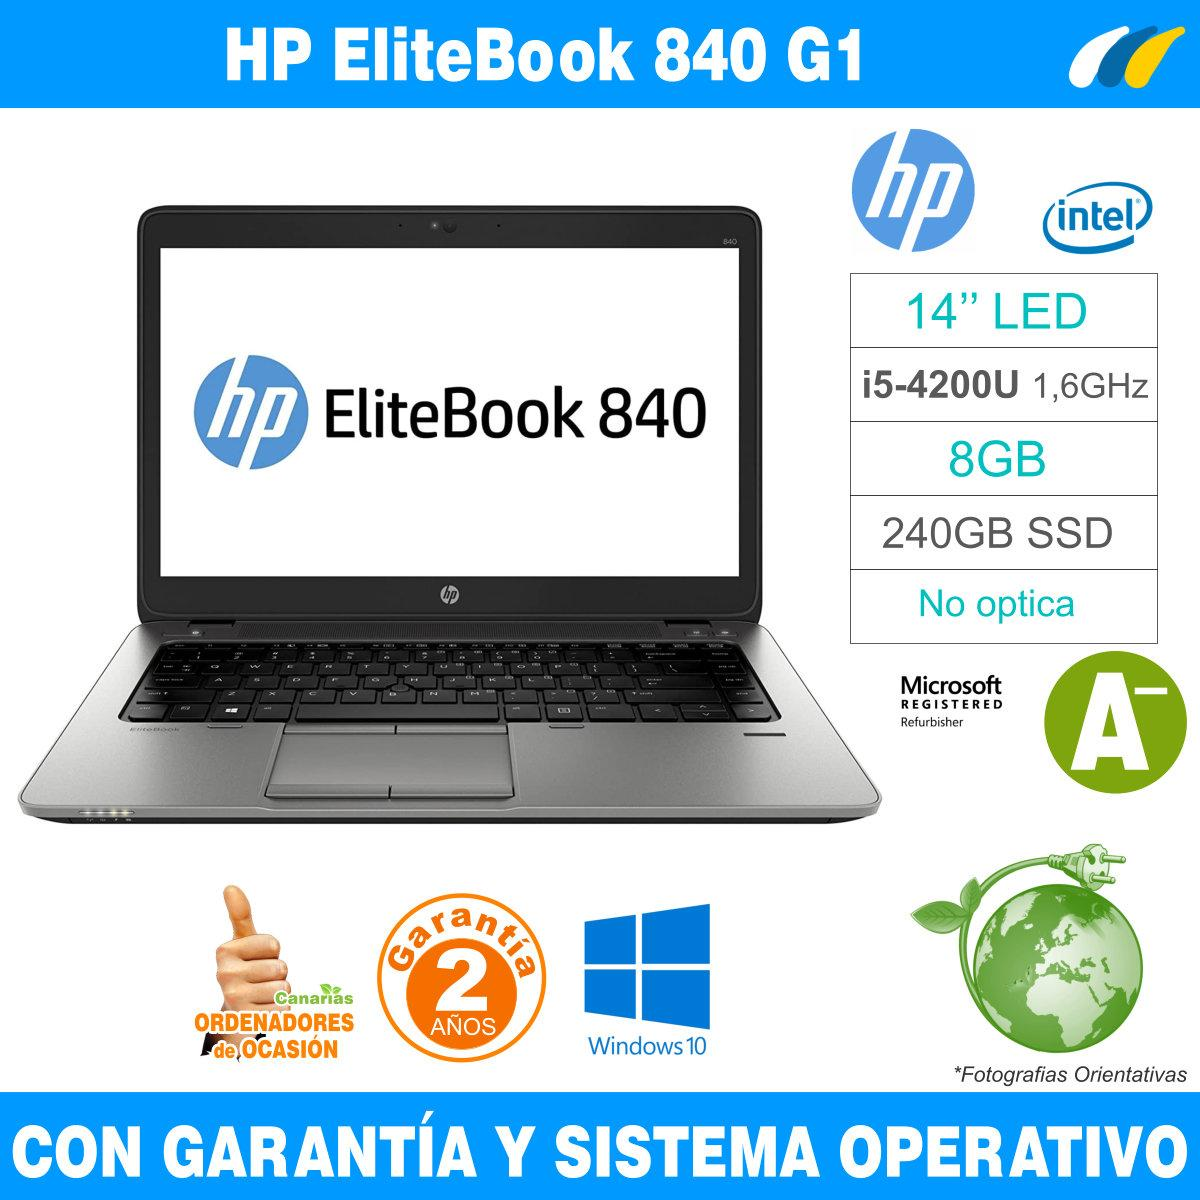 Intel i5-4200U 1,60 GHz  – 8GB – 240 GB SSD  - HP EliteBook 840 G1